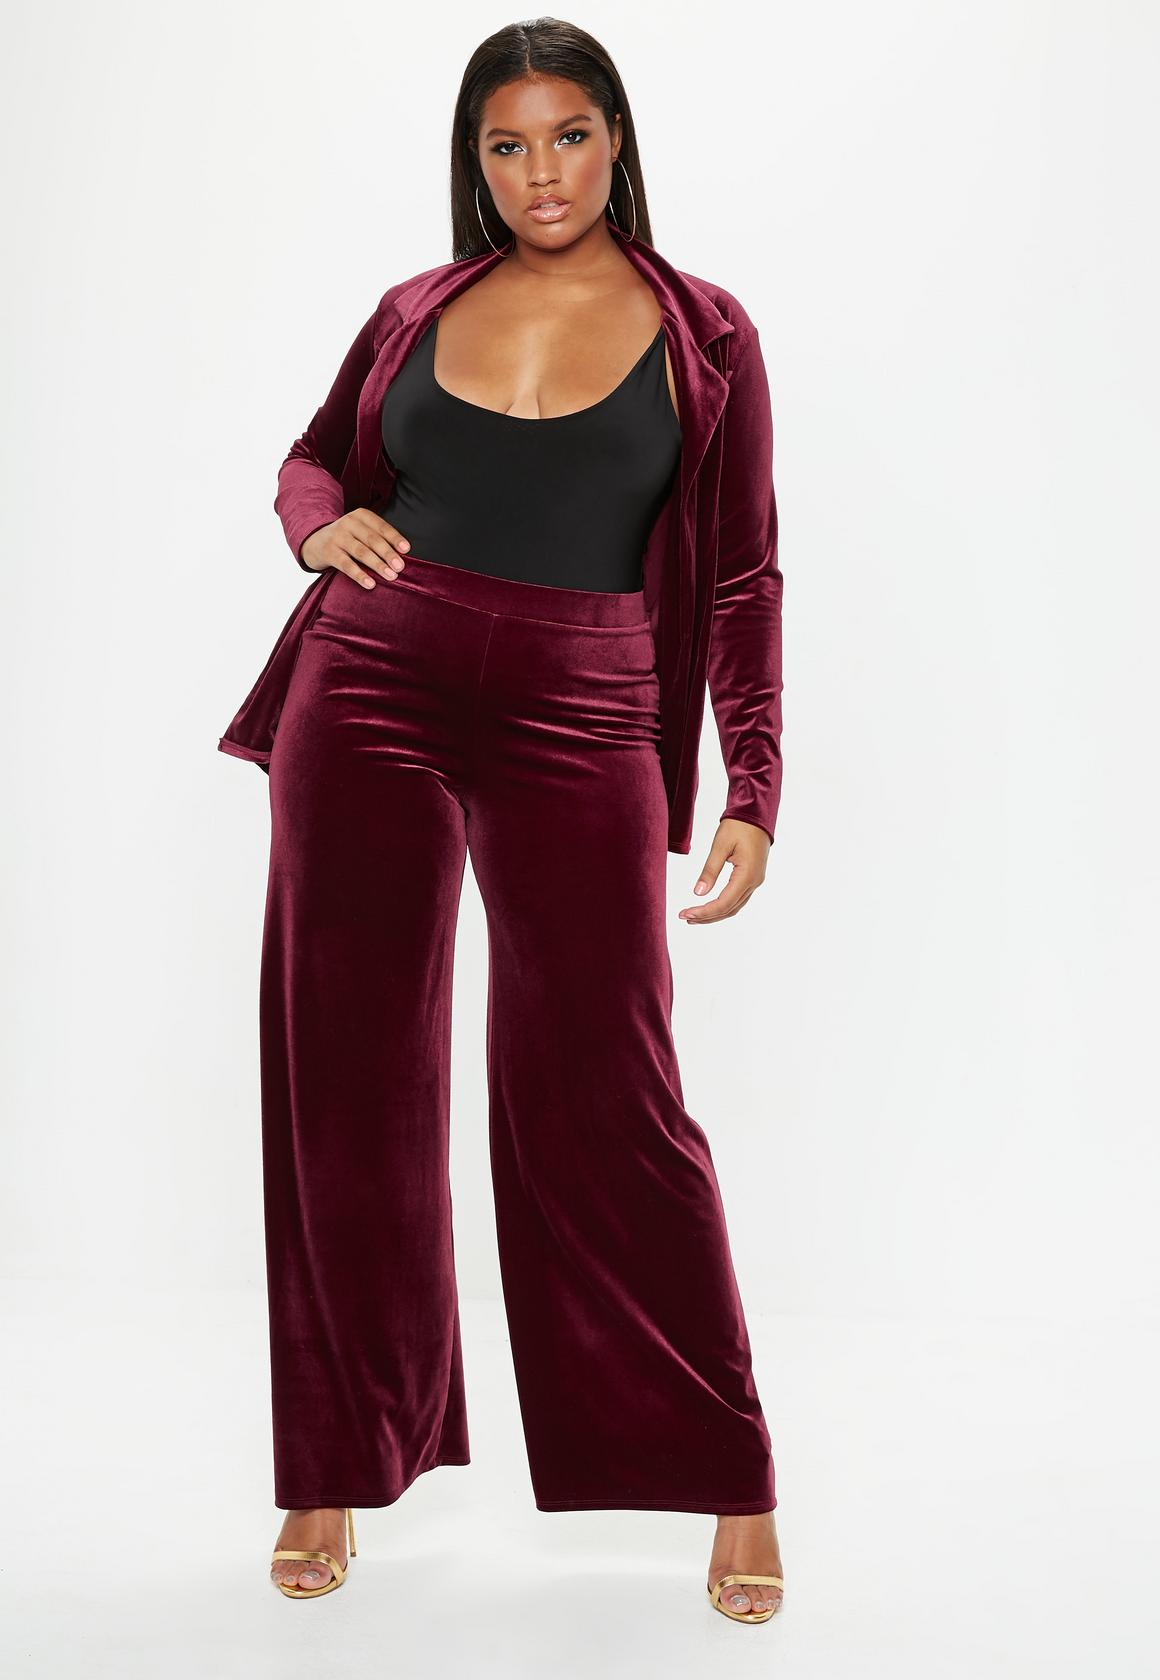 Plus Size Christmas Party Wear